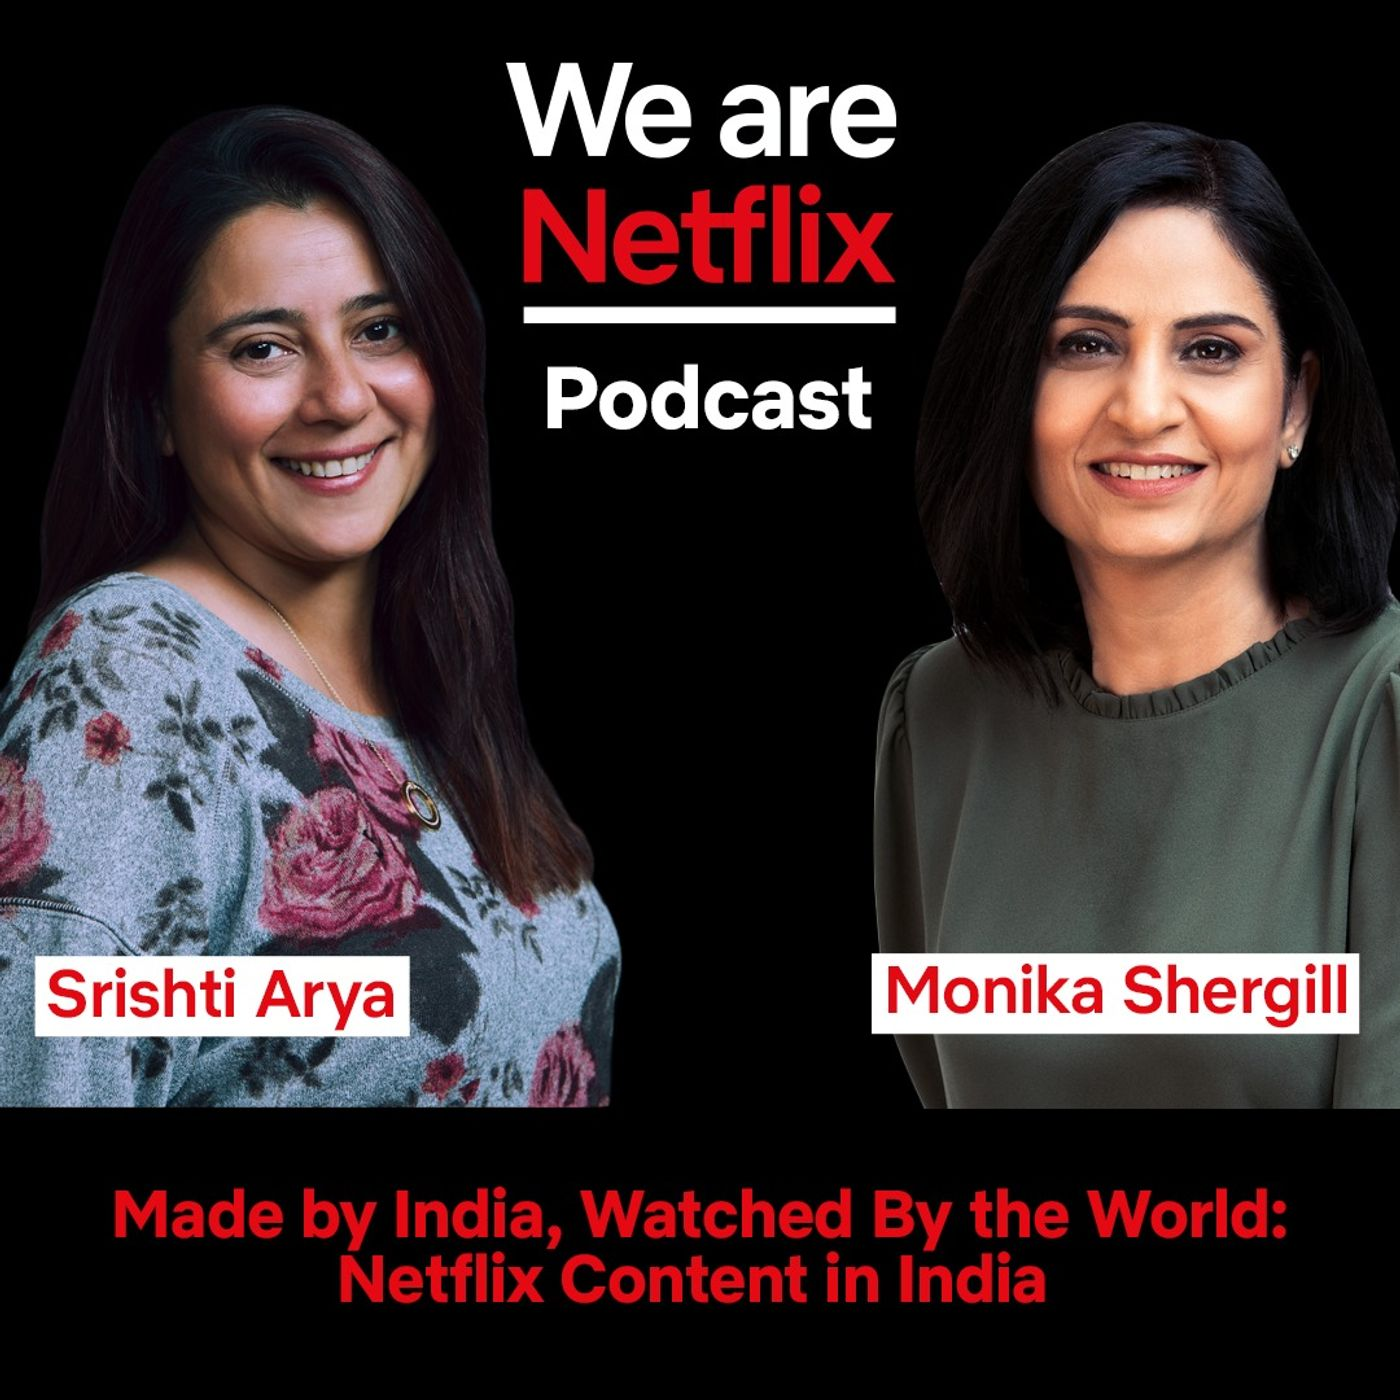 Made by India, Watched By the World